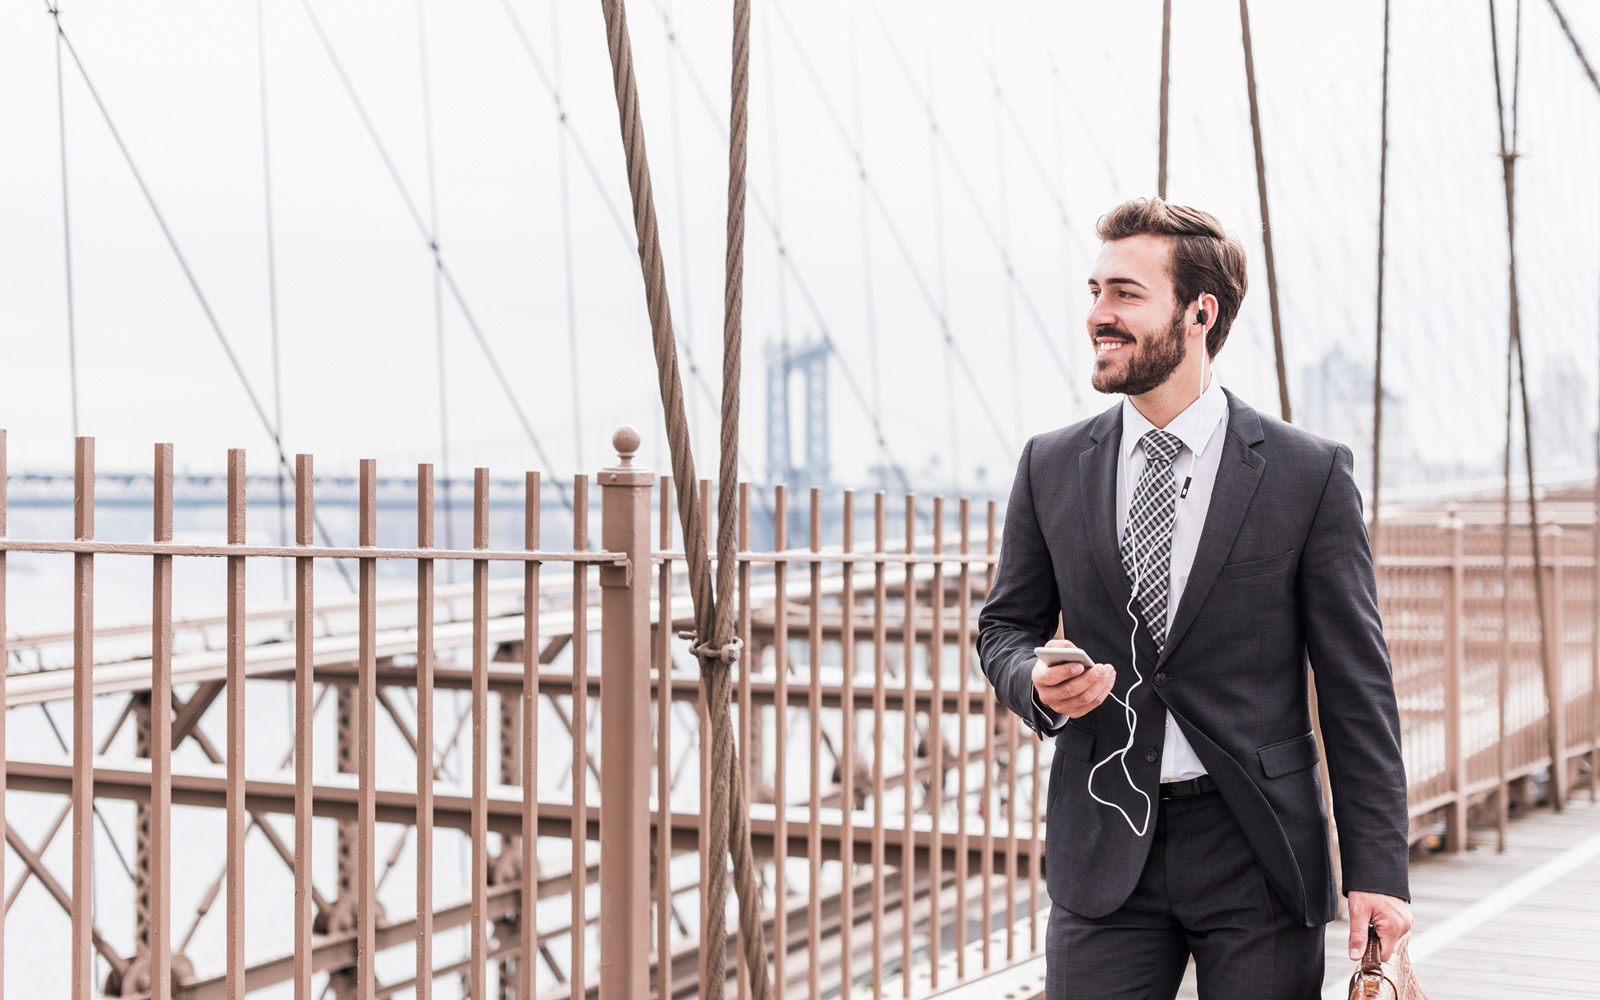 USA, New York City, smiling businessman with cell phone and earbuds on Brooklyn Bridge